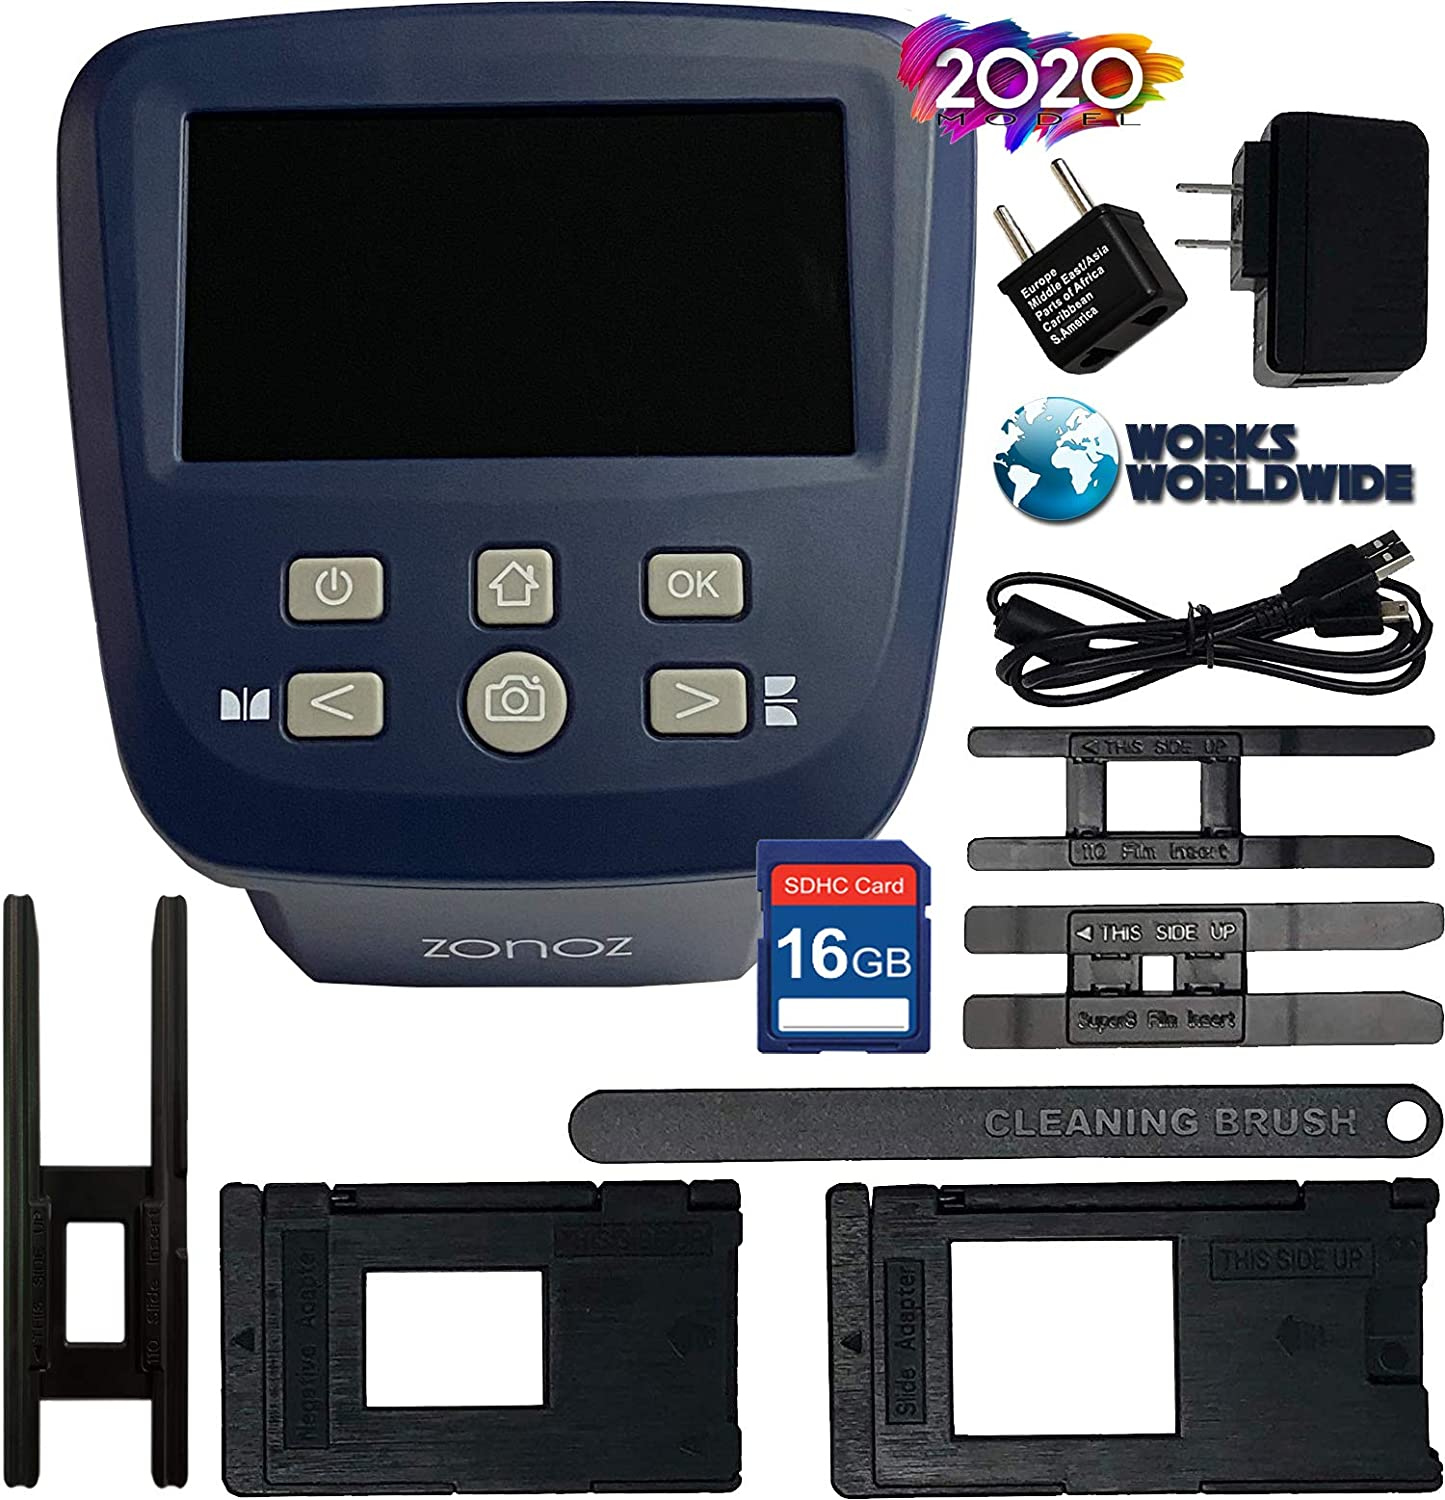 zonoz FS-Five Digital Film /& Slide Scanner Easy-Load Film Inserts Adapters Converts 35mm 110 Super 8 /& 8mm Film Negatives /& Slides to JPEG 16GB SD Card 126 Includes Large Bright 5-Inch LCD